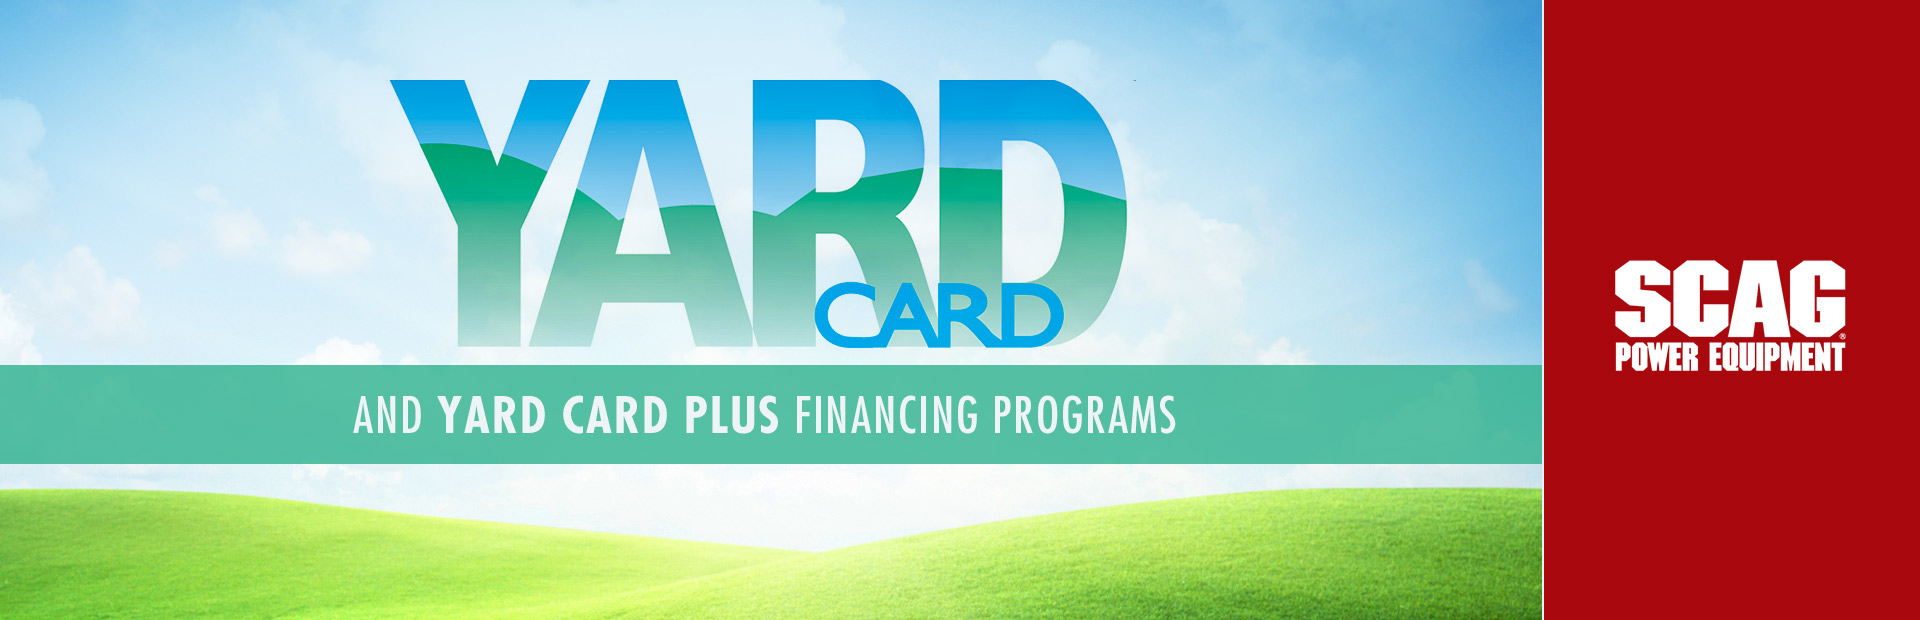 Scag: Yard Card and Yard Card Plus Financing Programs